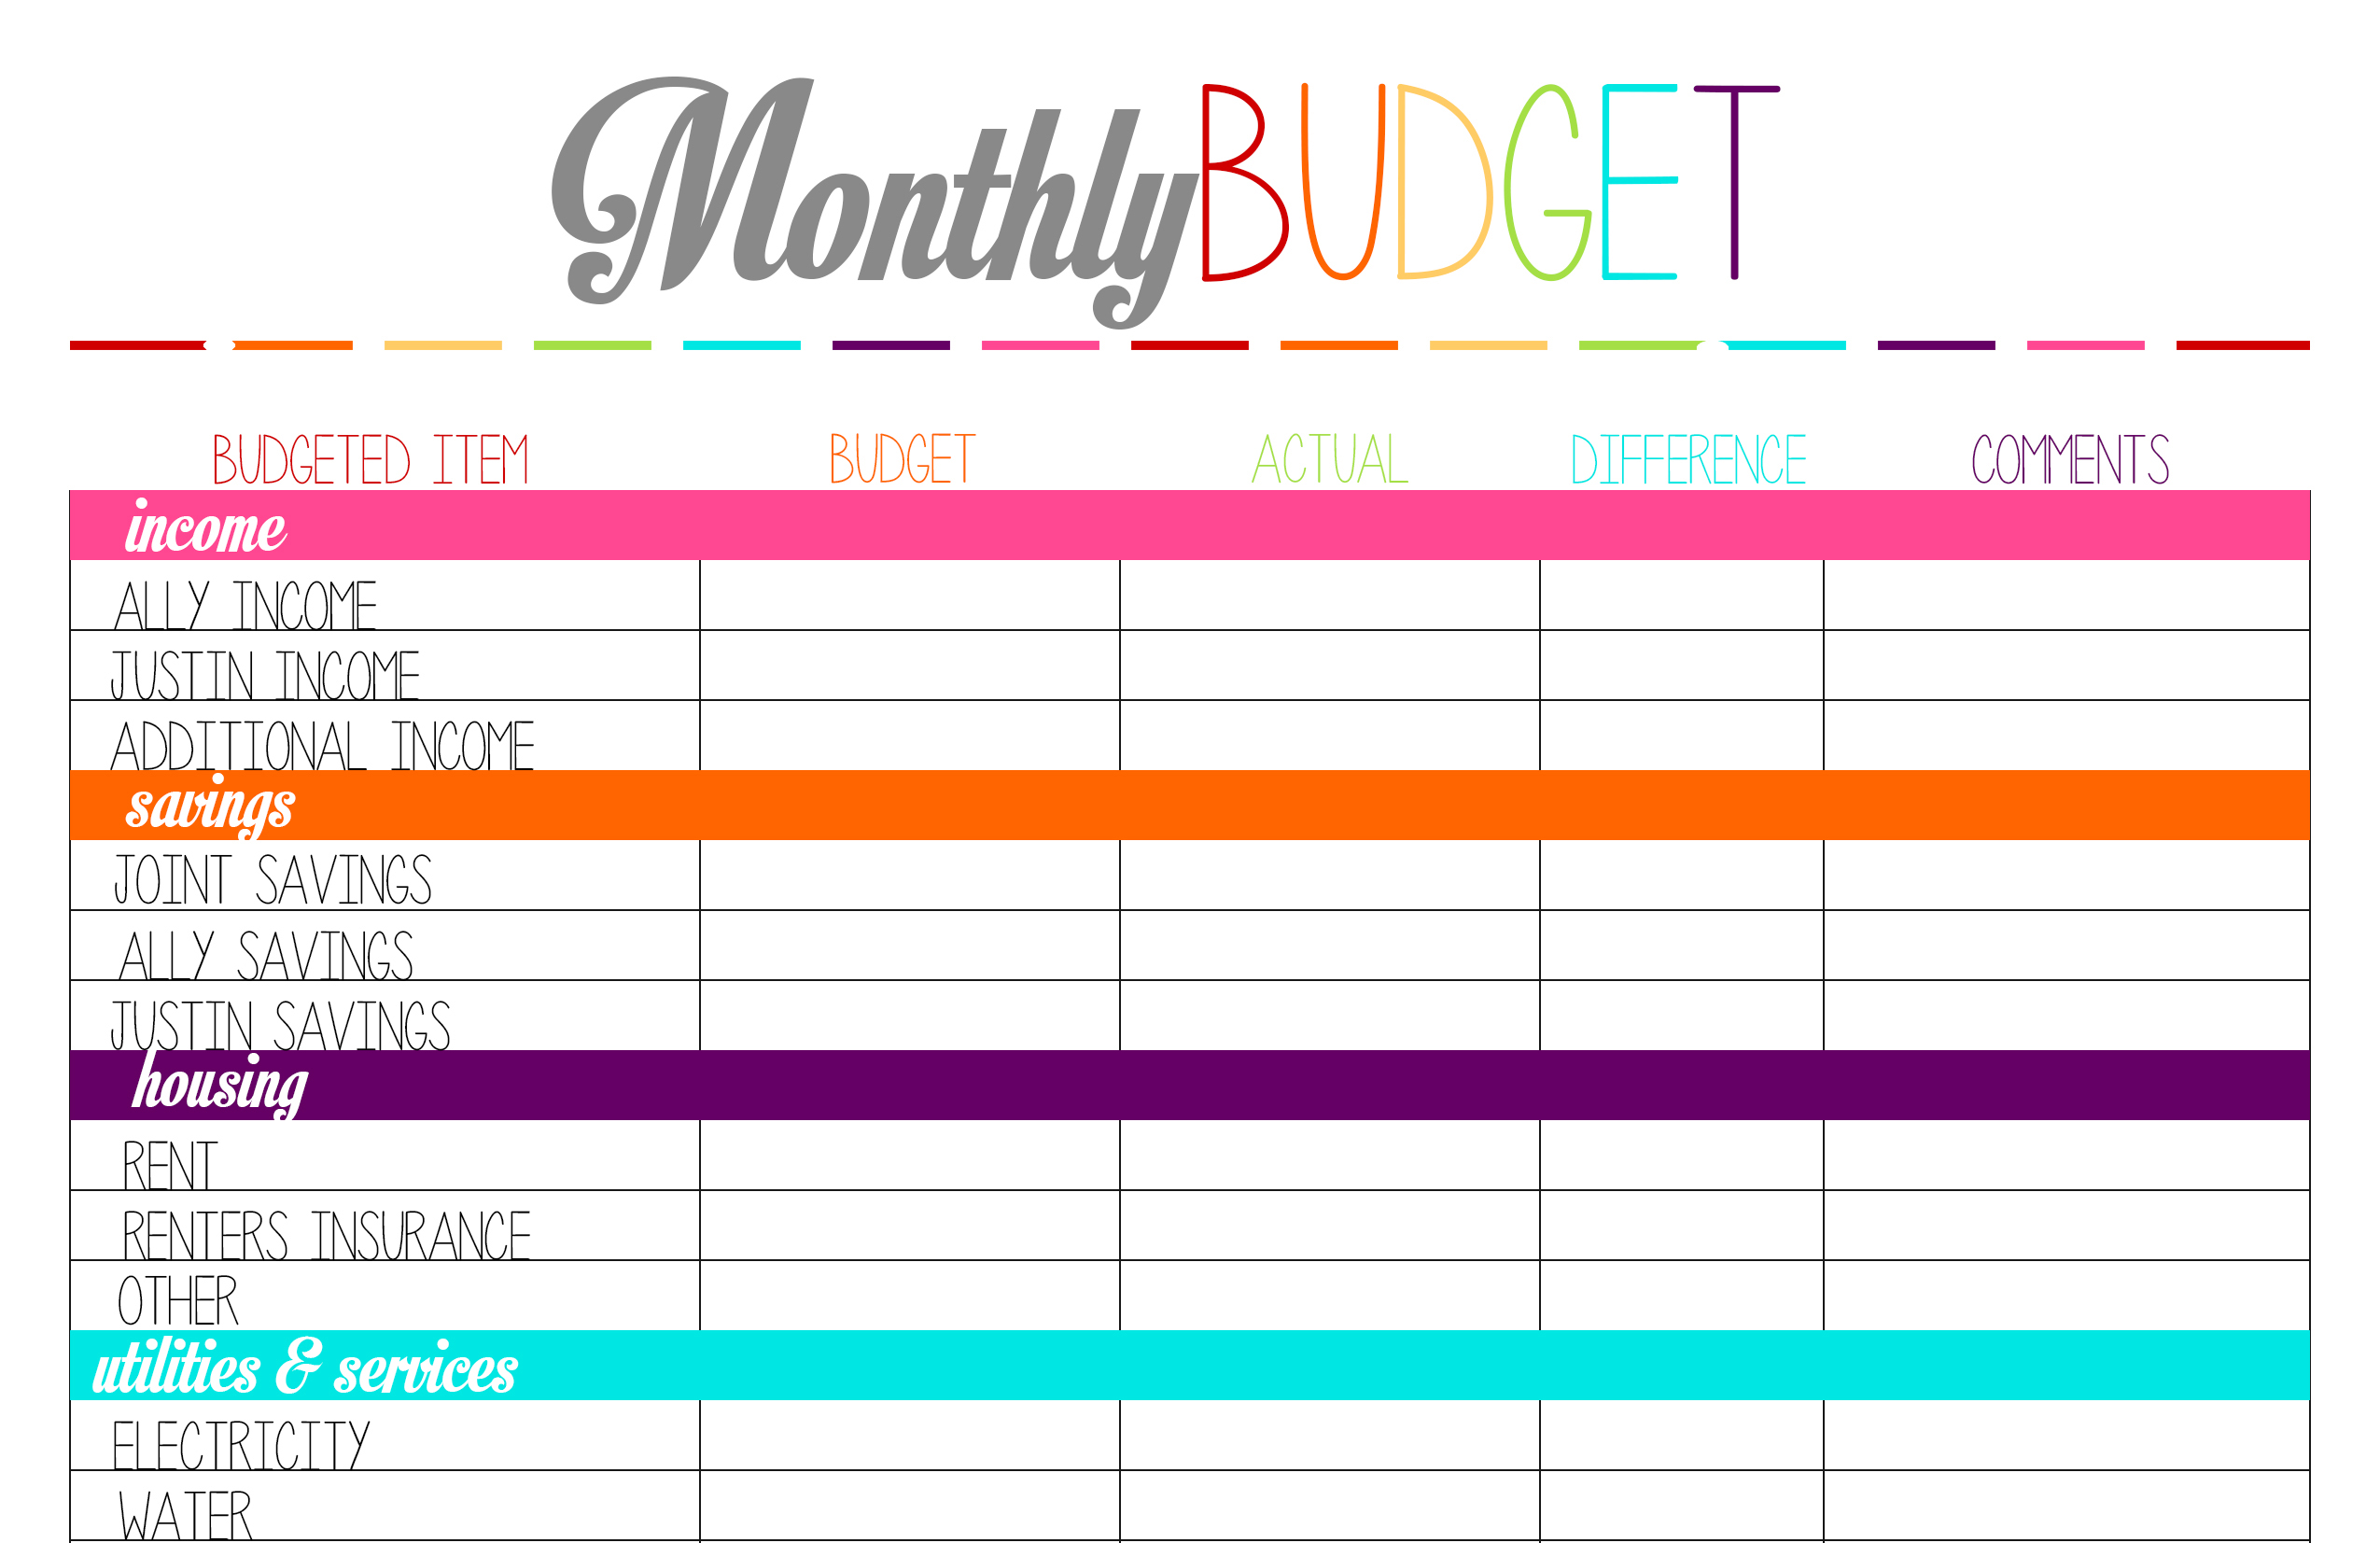 Worksheets Budget Worksheets Free printables budget worksheets printable joomsimple thousands of worksheet 2017 calendar free bi weekly worksheet